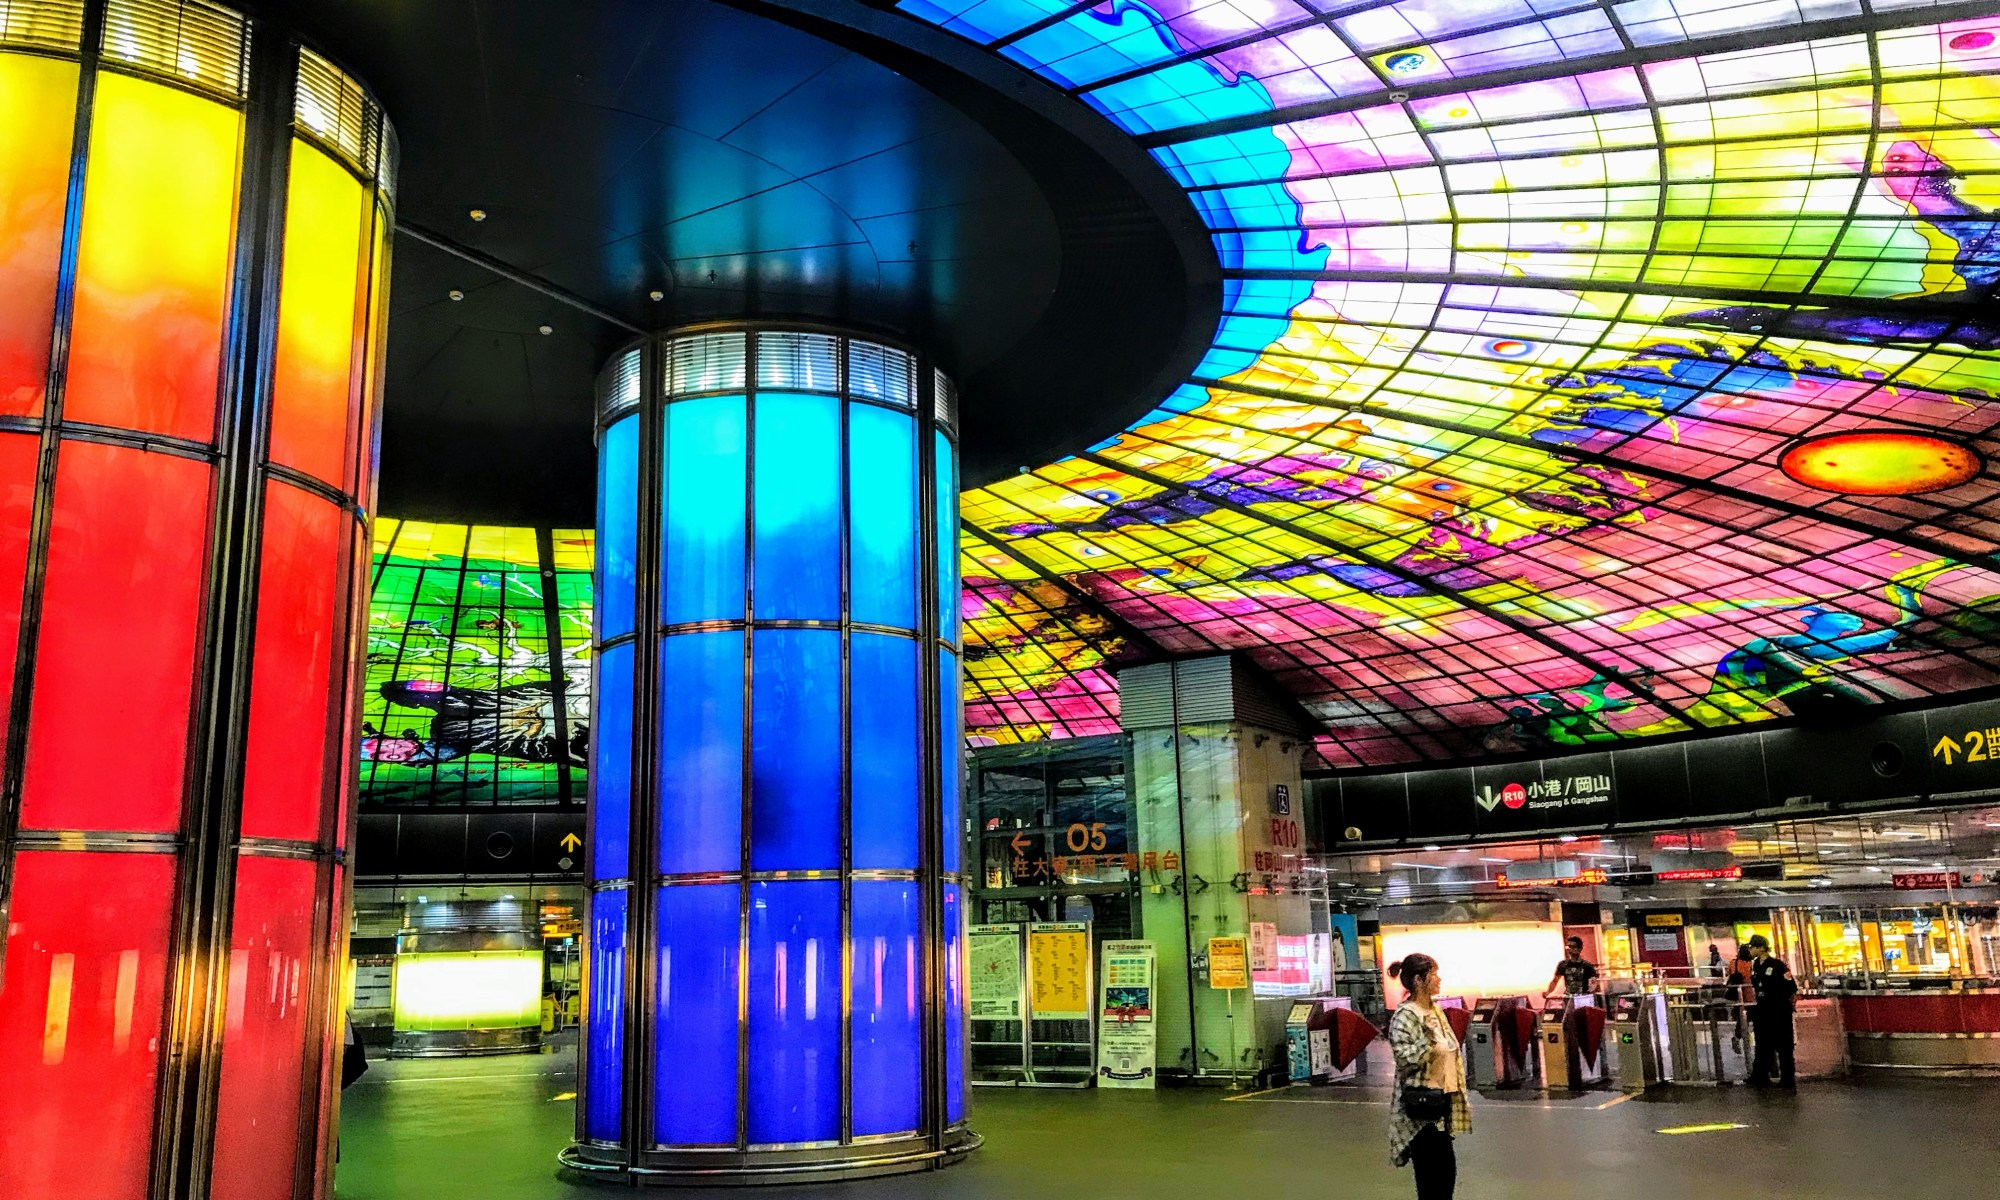 Formosa Boulevard metro station, Kaohsiung, Taiwan